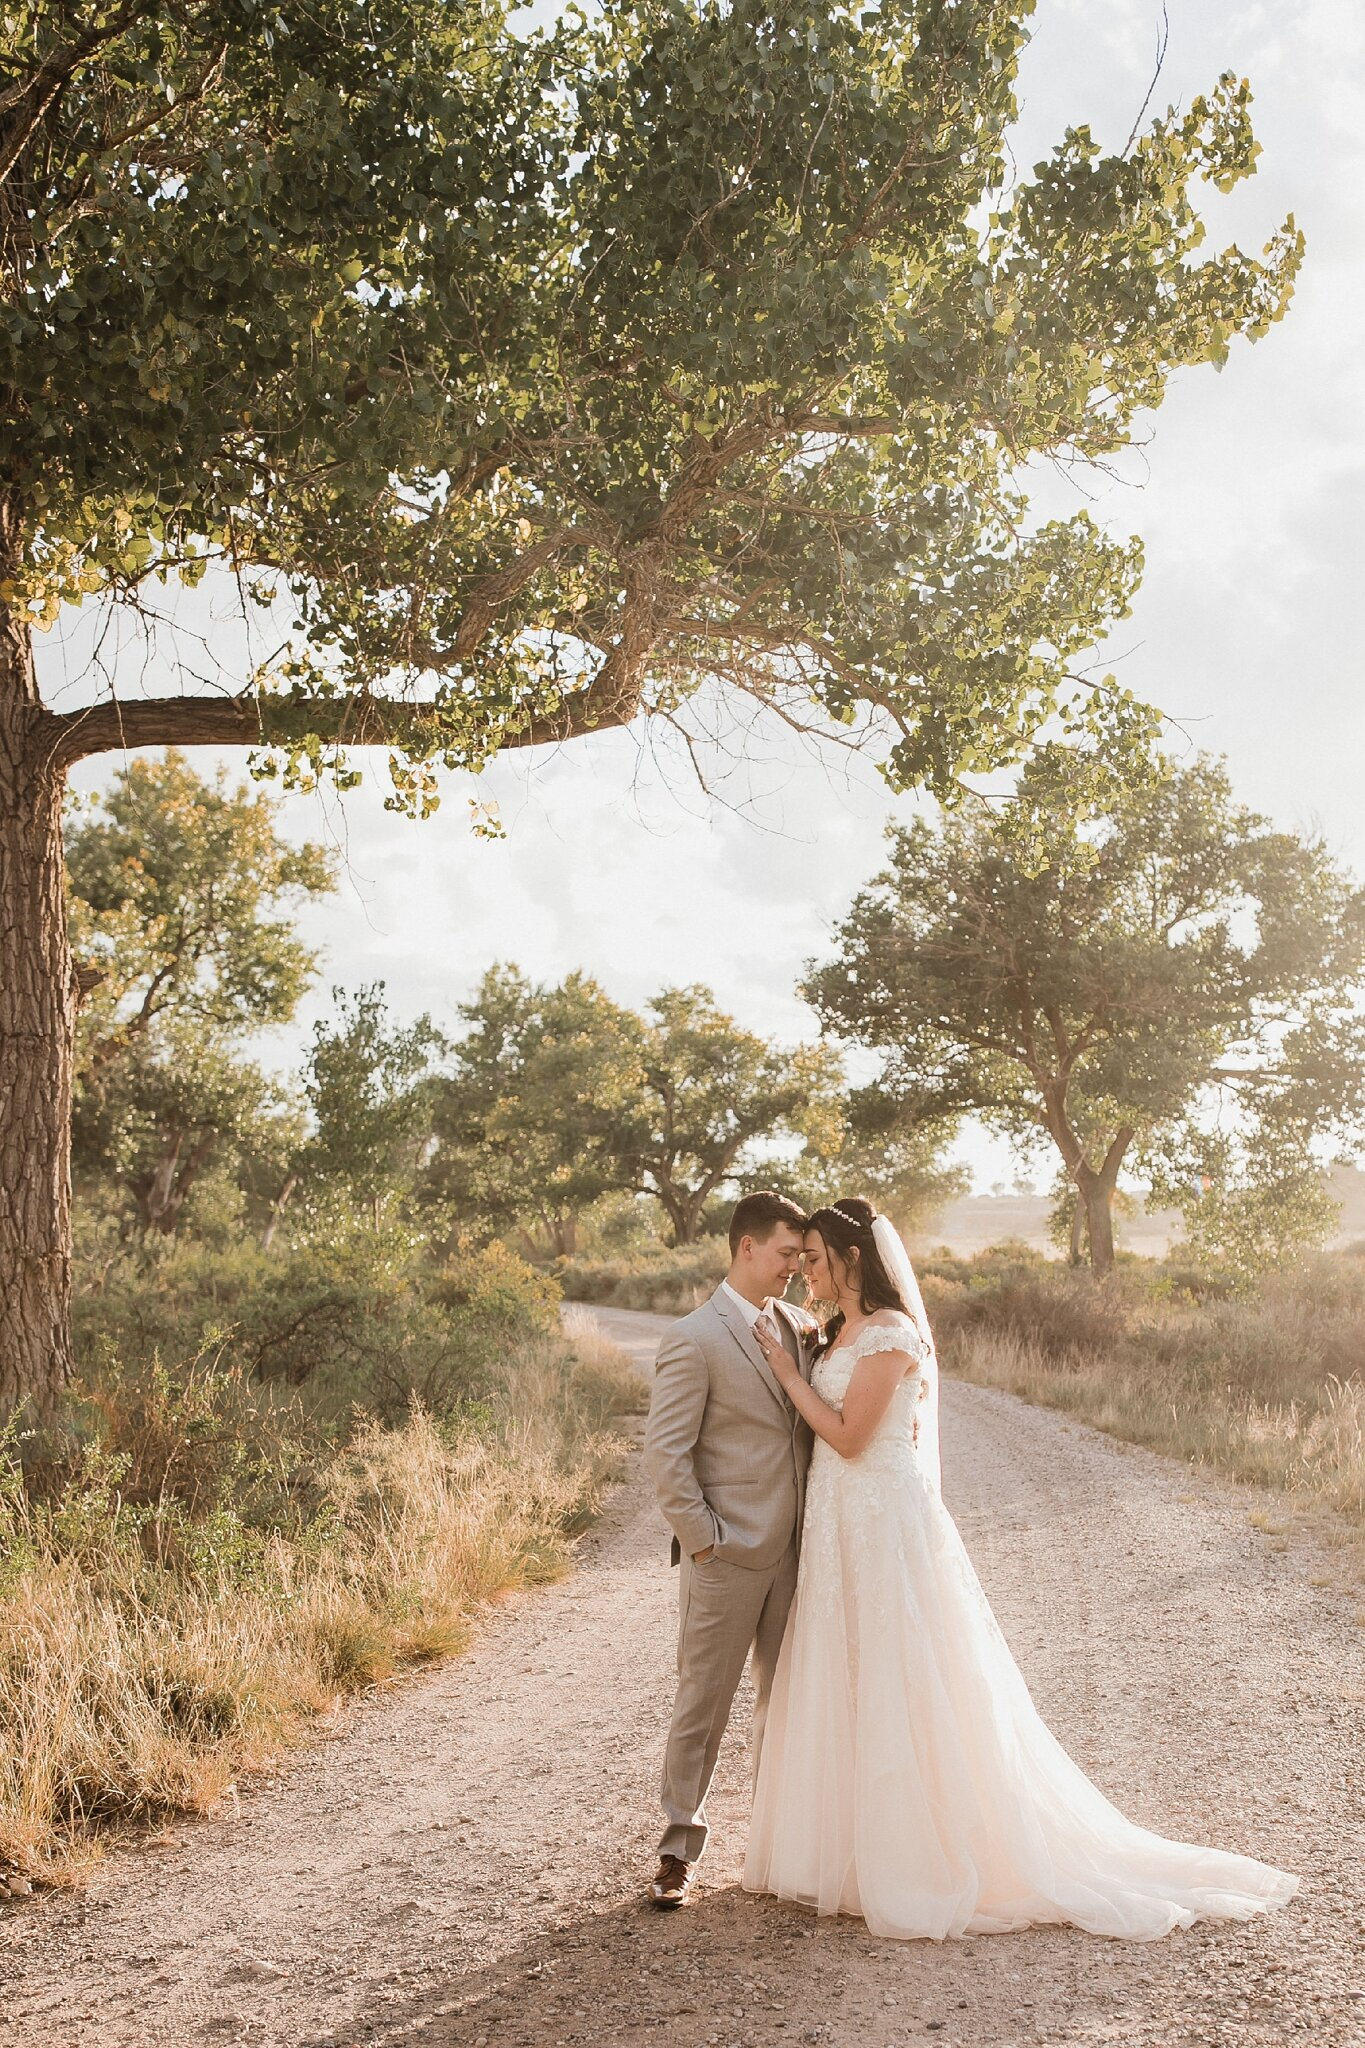 Alicia+lucia+photography+-+albuquerque+wedding+photographer+-+santa+fe+wedding+photography+-+new+mexico+wedding+photographer+-+new+mexico+wedding+-+wedding+-+bridal+gown+-+wedding+gown+-+ballgown+wedding+gown+-+ballgown+bridal+gown_0055.jpg